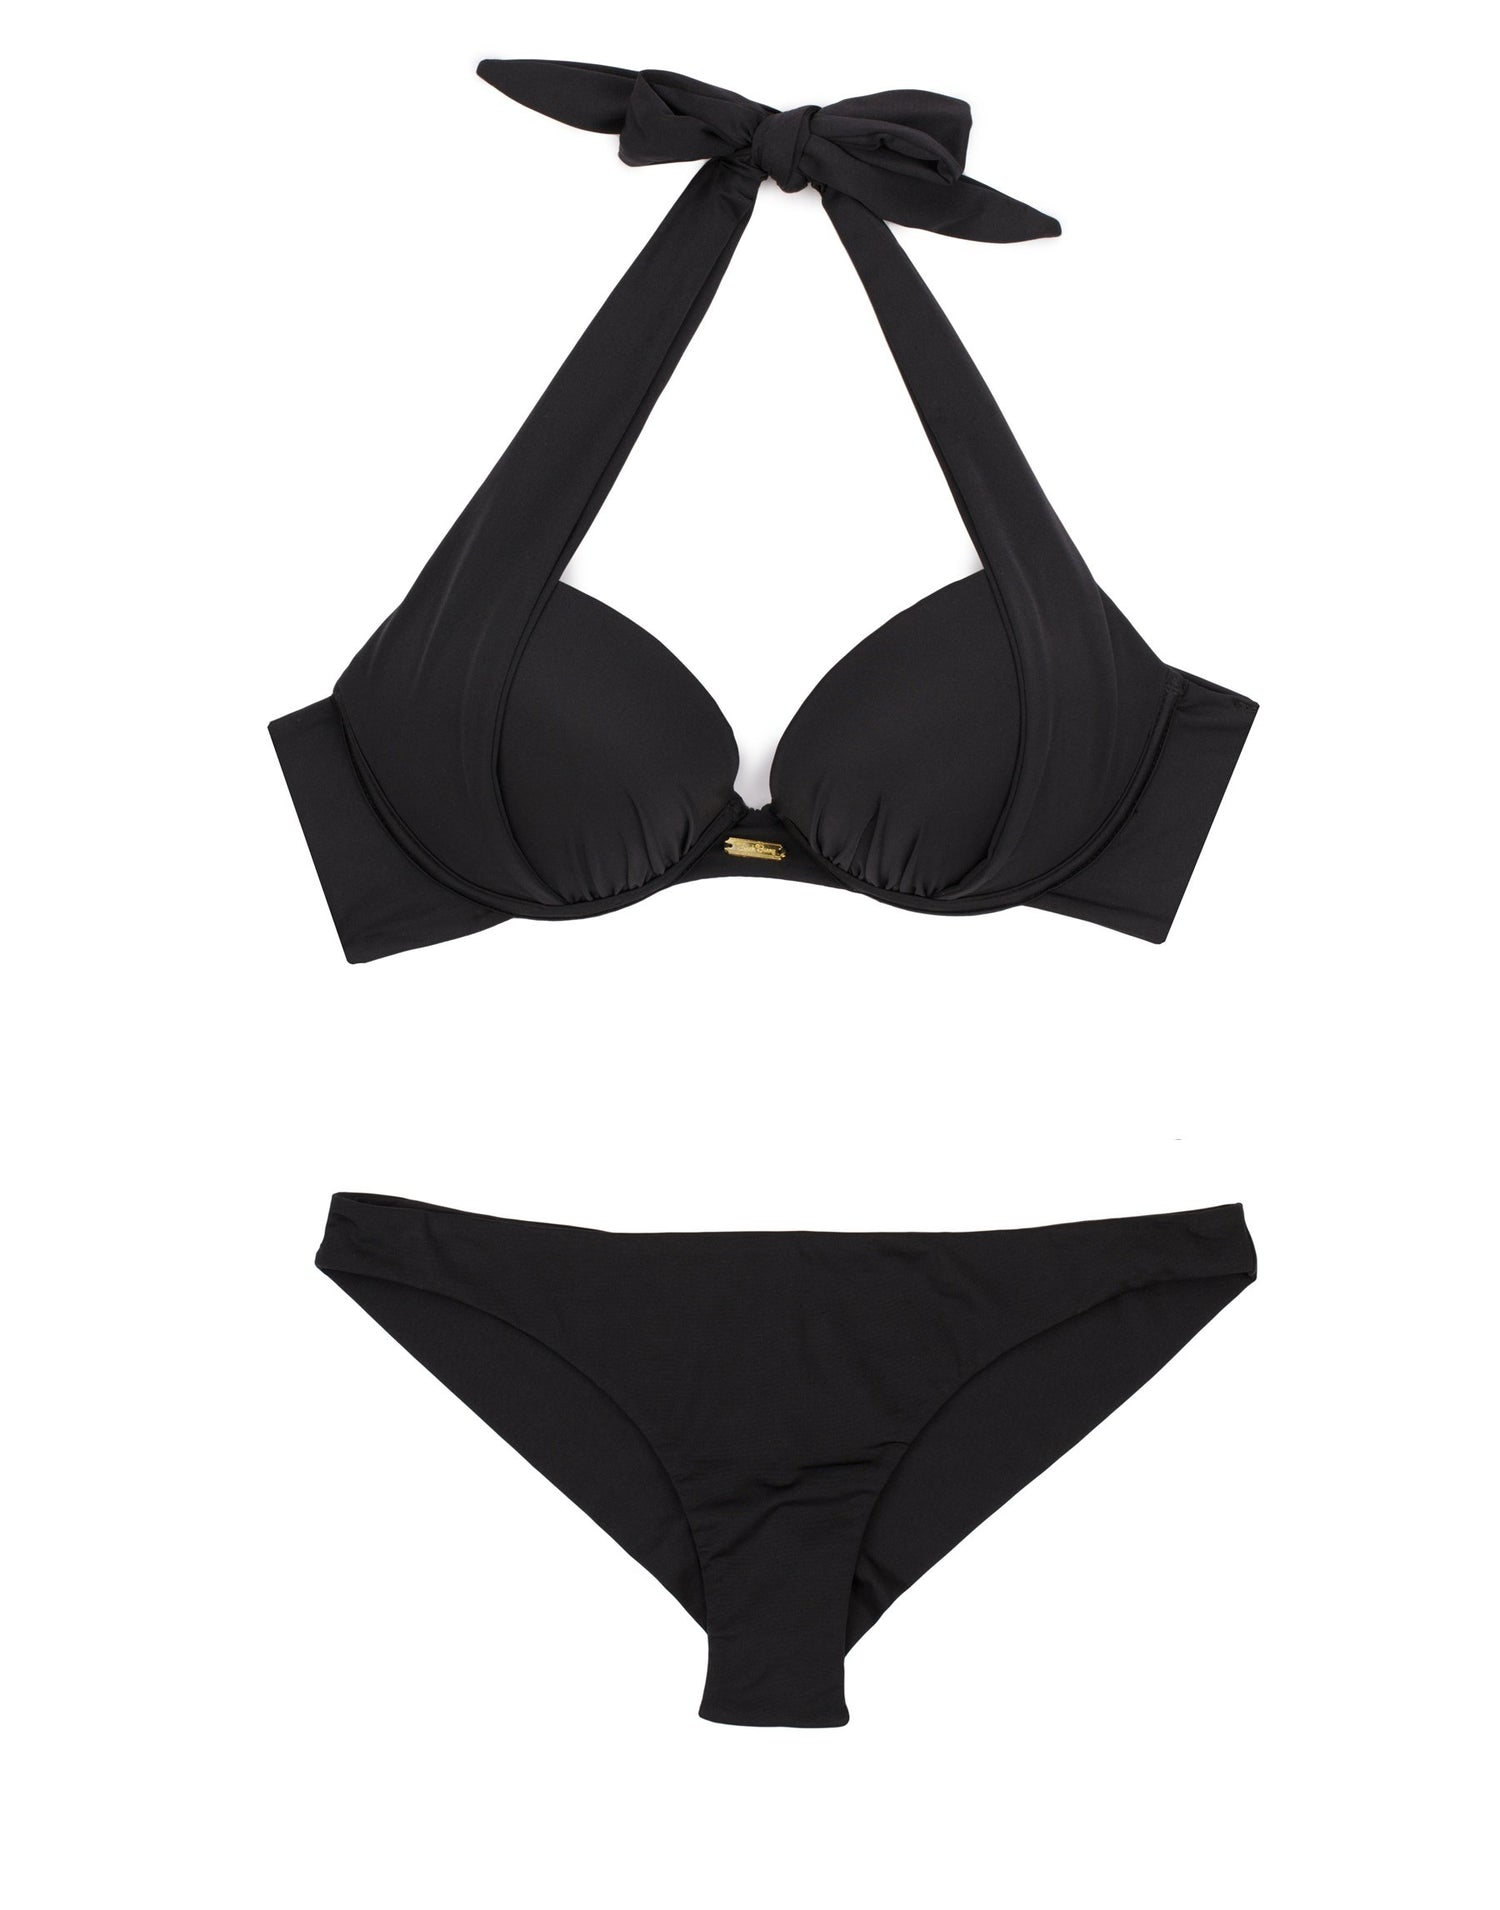 Black Kate Push Up Bikini Top - Product View